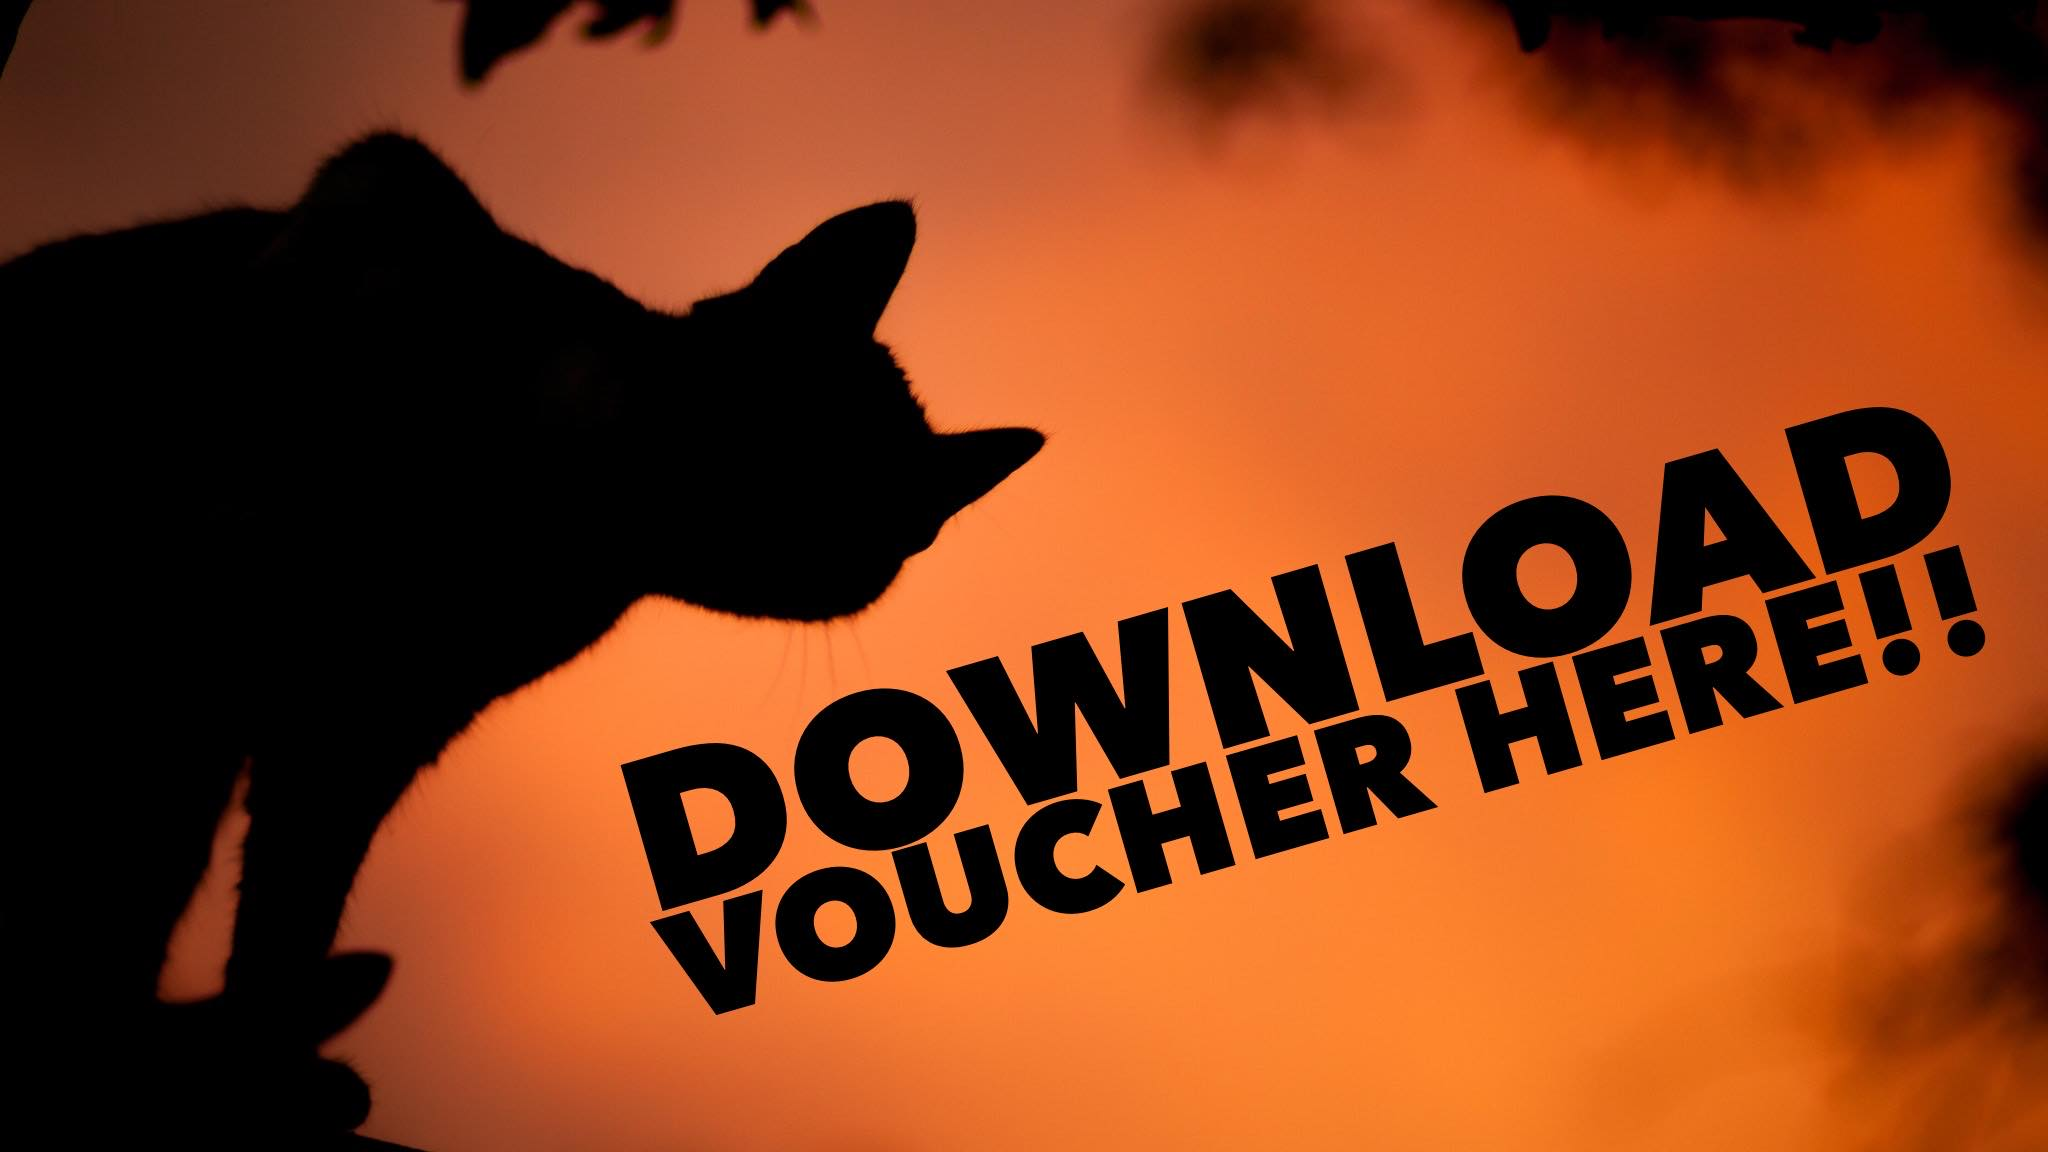 """Image of black cat silhouetted in orange light with black text that reads """"Download Vouchers Here"""""""